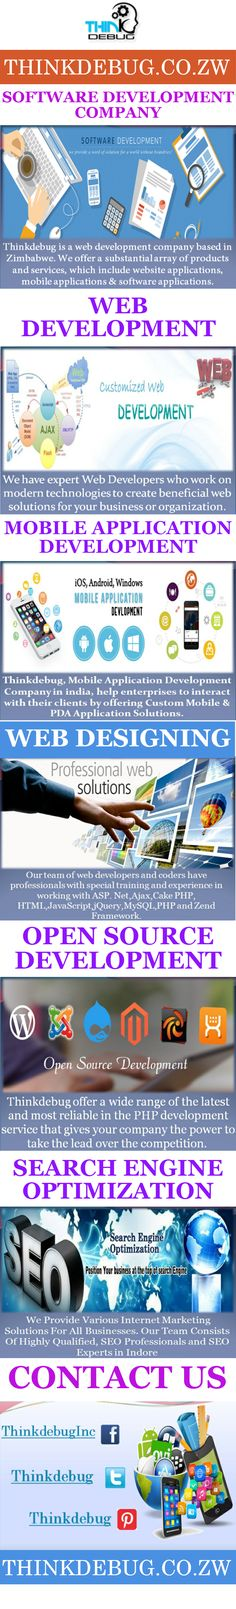 Your website is the representation of your business or organization to the world. We develop the website or portal with complex functions and makes your ideas into a #web_application. At our #web_Development_Company in #Zimbabwe offers you wide range of web design & development services in PHP, Angular.Js, Meteor.Js secured web applications etc.,  More visit: http://thinkdebug.co.zw